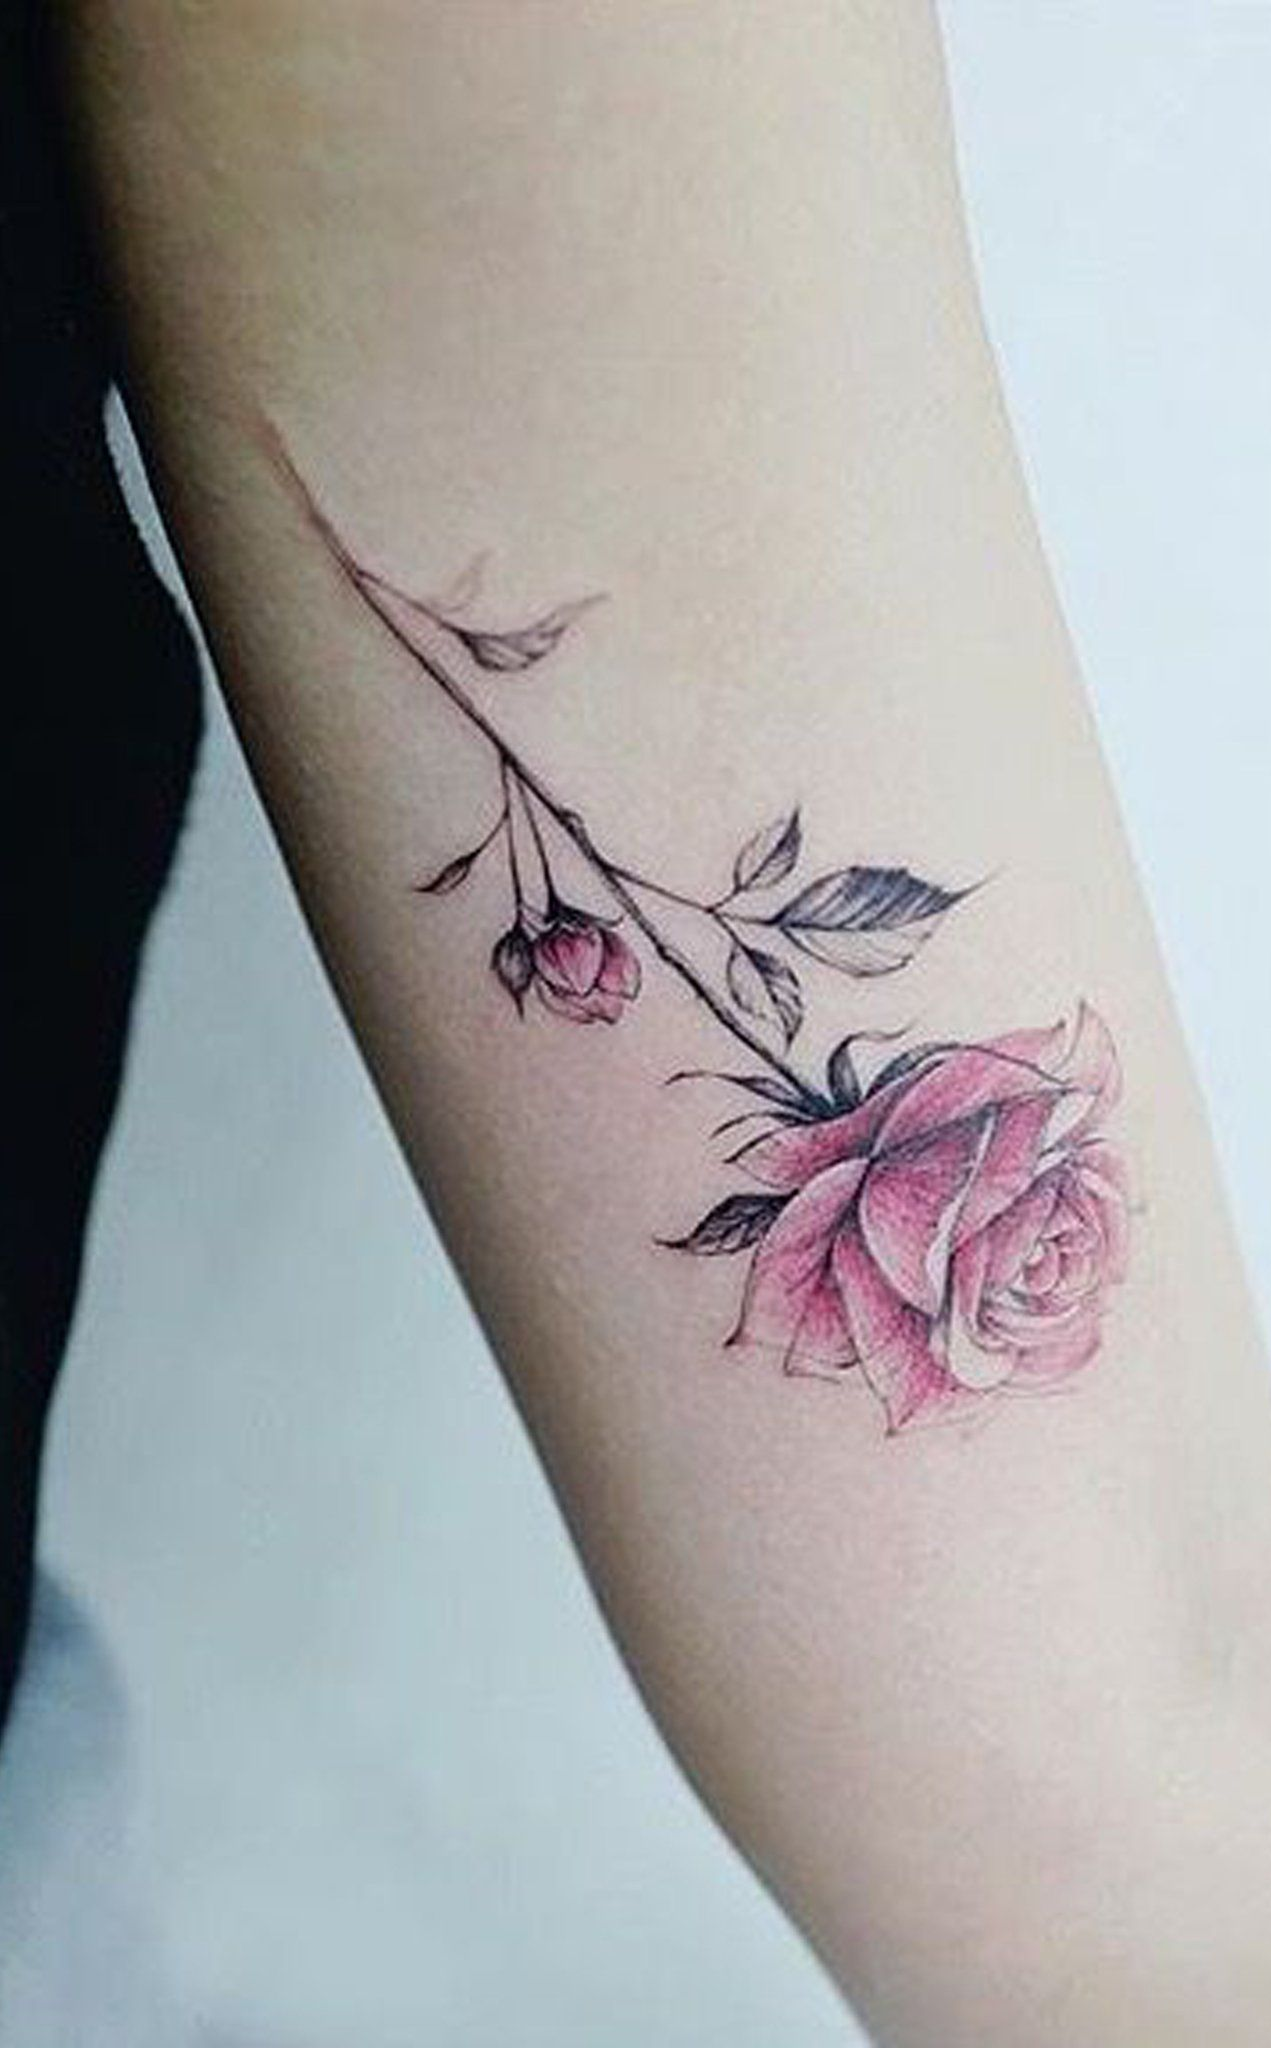 30 Simple And Small Flower Tattoos Ideas For Women Ideas And Designs